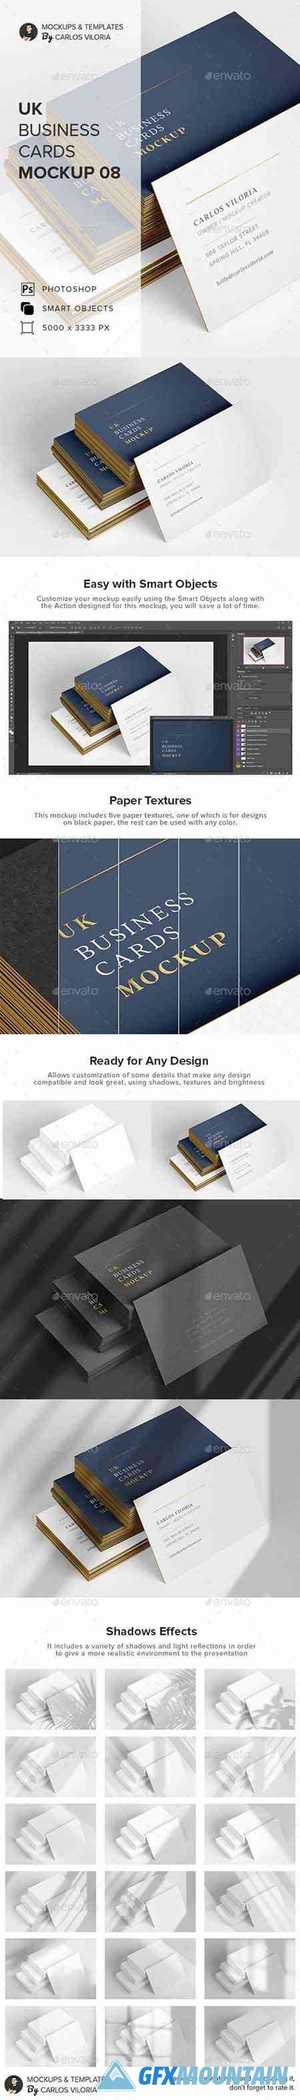 UK Business Cards Mockup 08 27826313